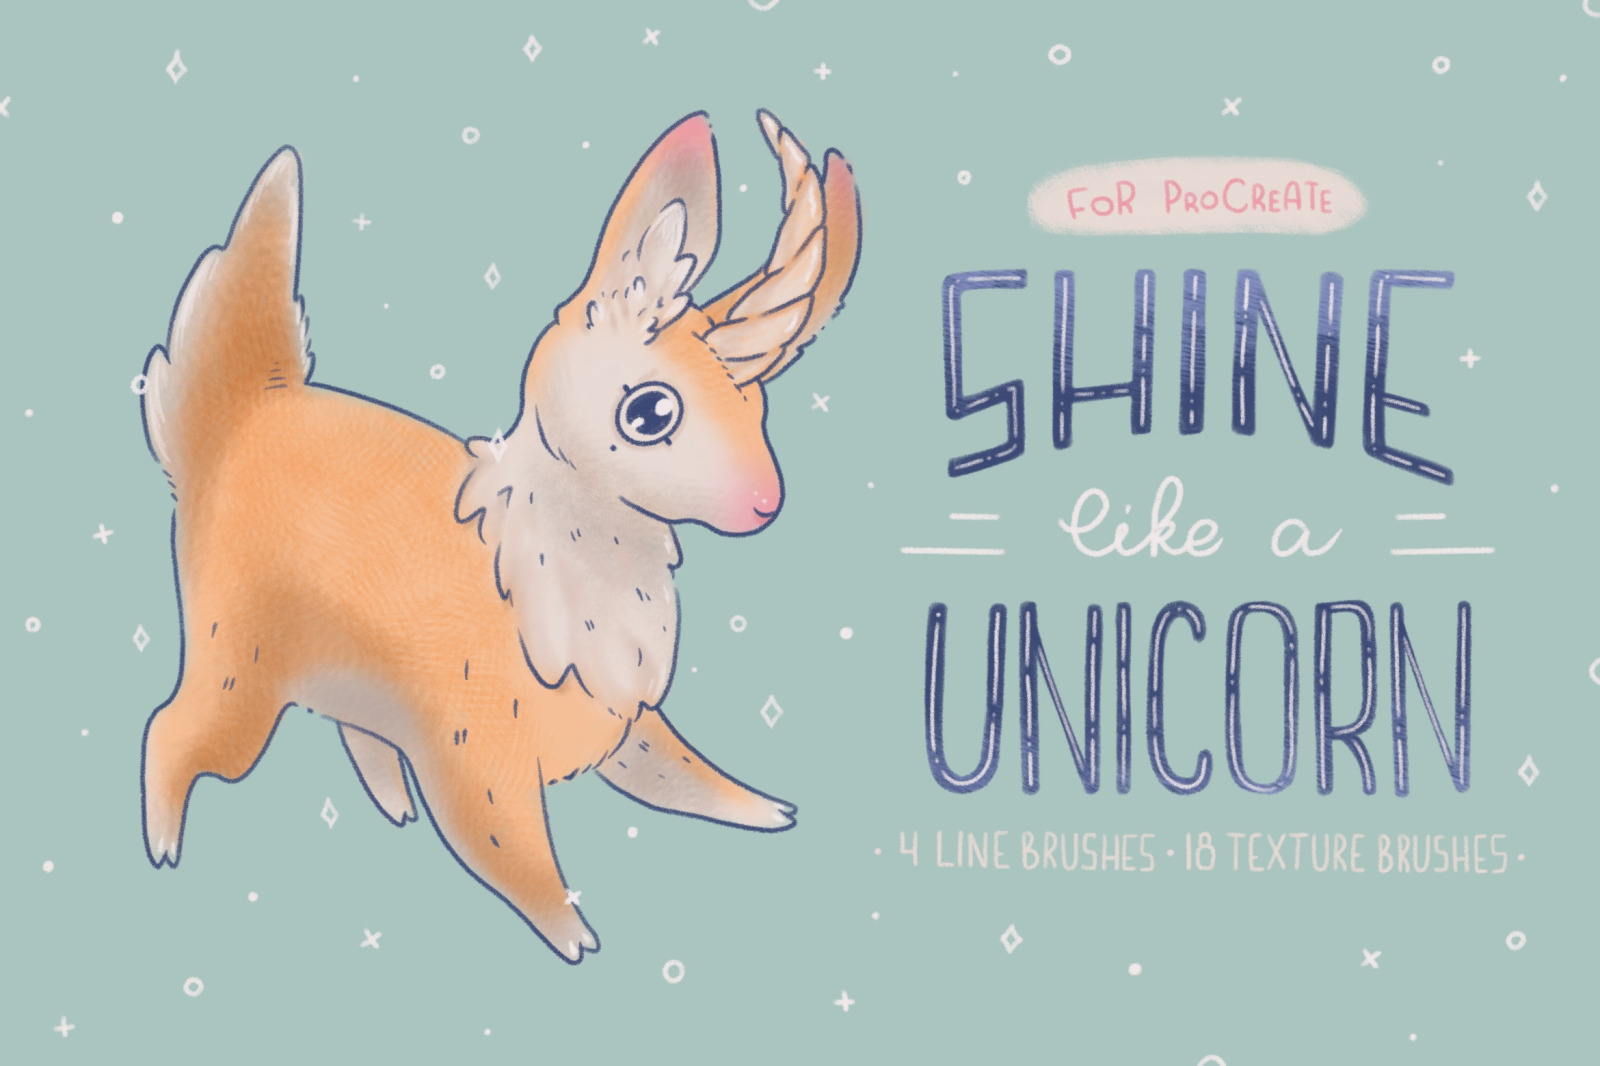 Shine Like a Unicorn | Procreate Brushes